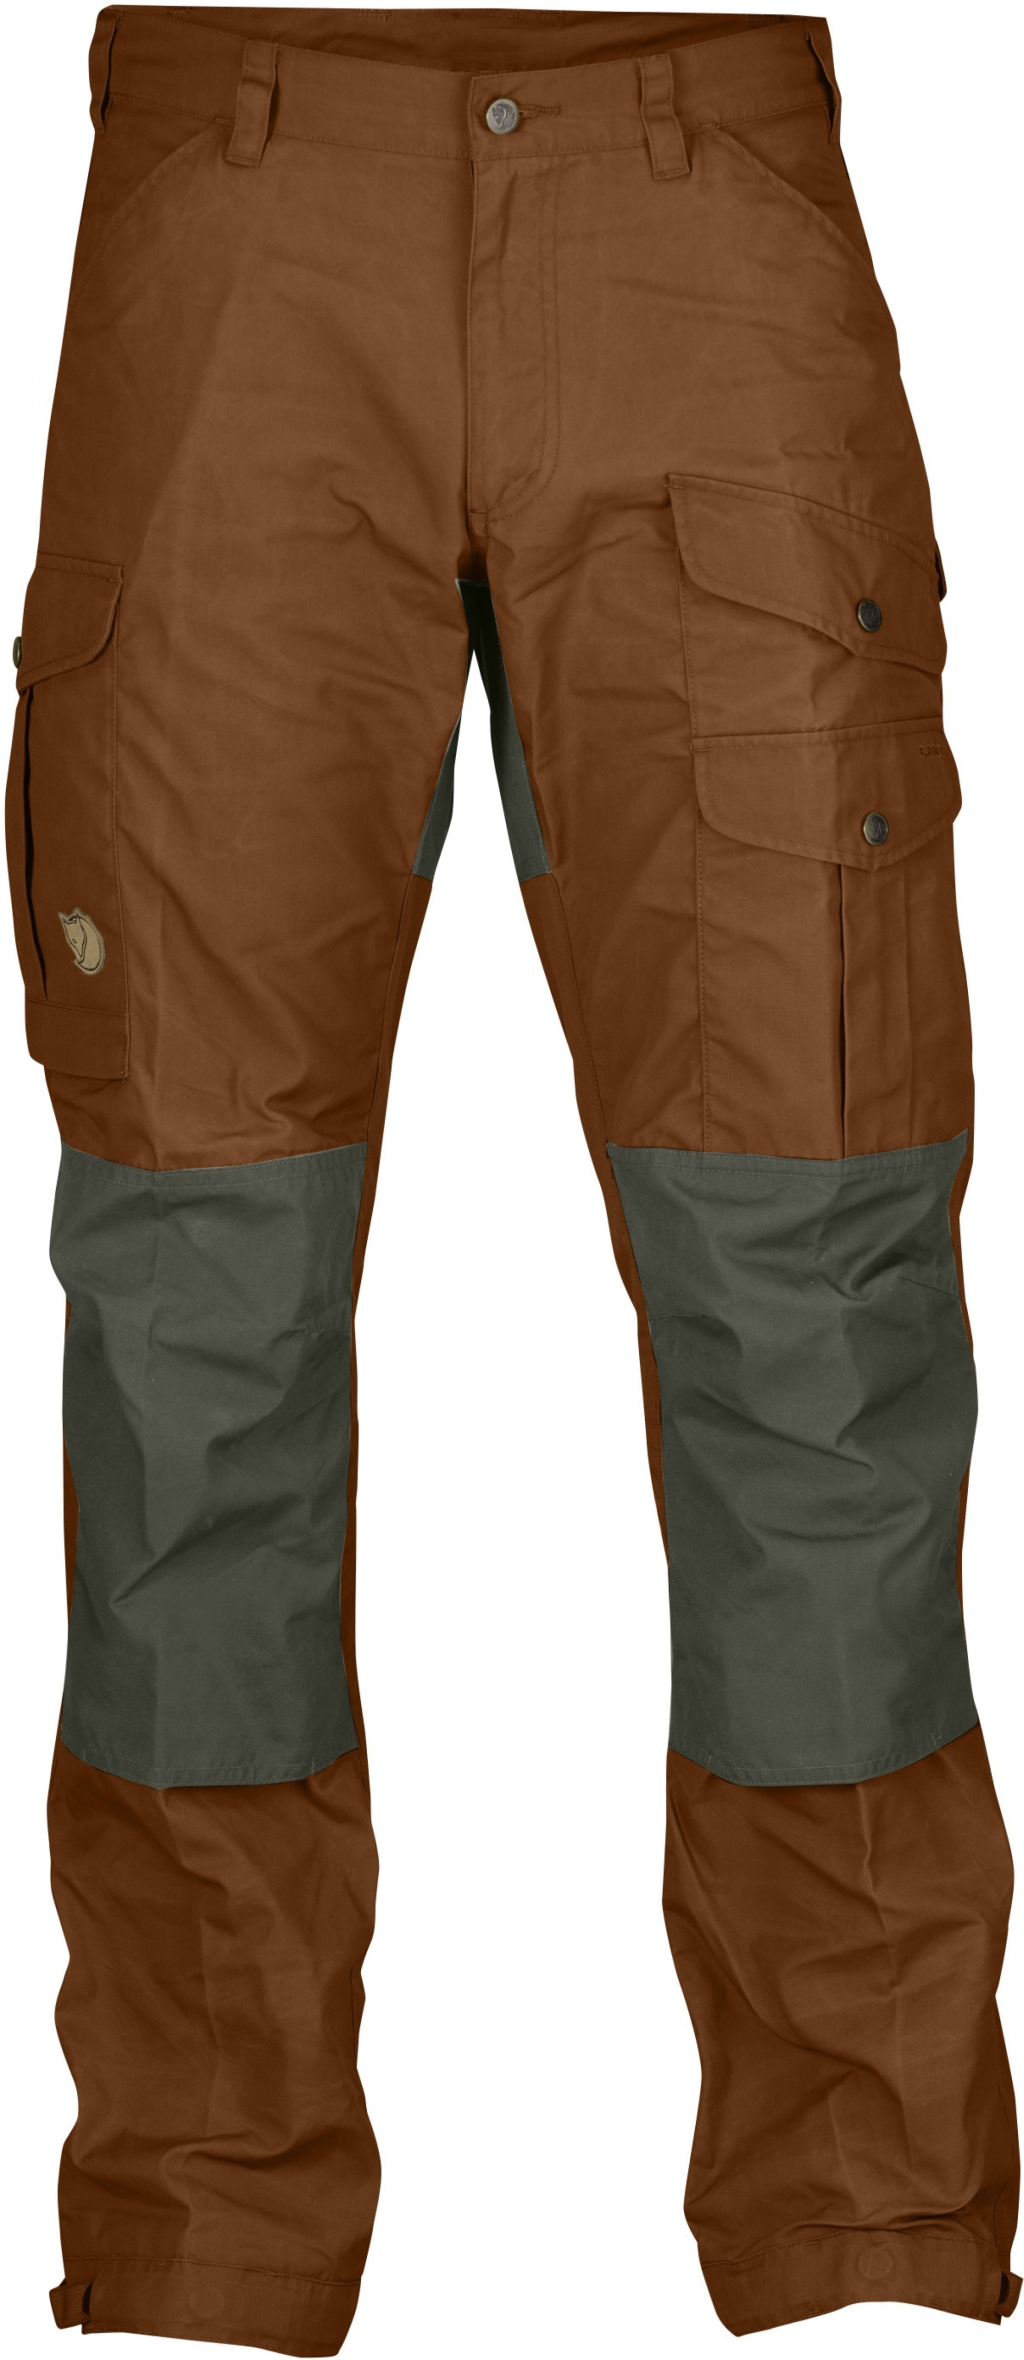 FjallRaven Vidda Pro Trousers Long Rust-30